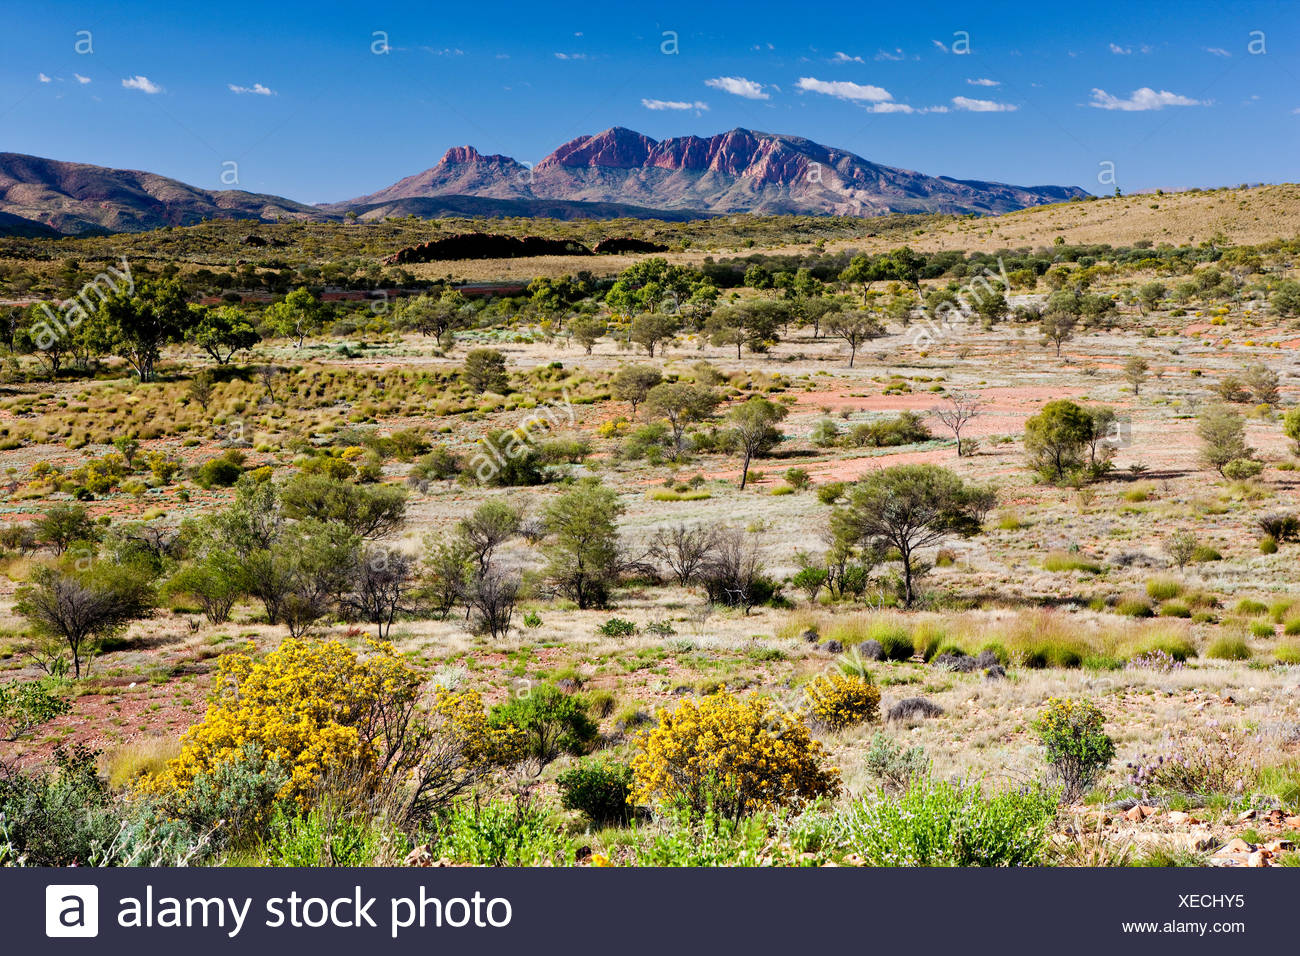 Mt. Sonder, West MacDonnell National Park, Northern Territory, Australia - Stock Image